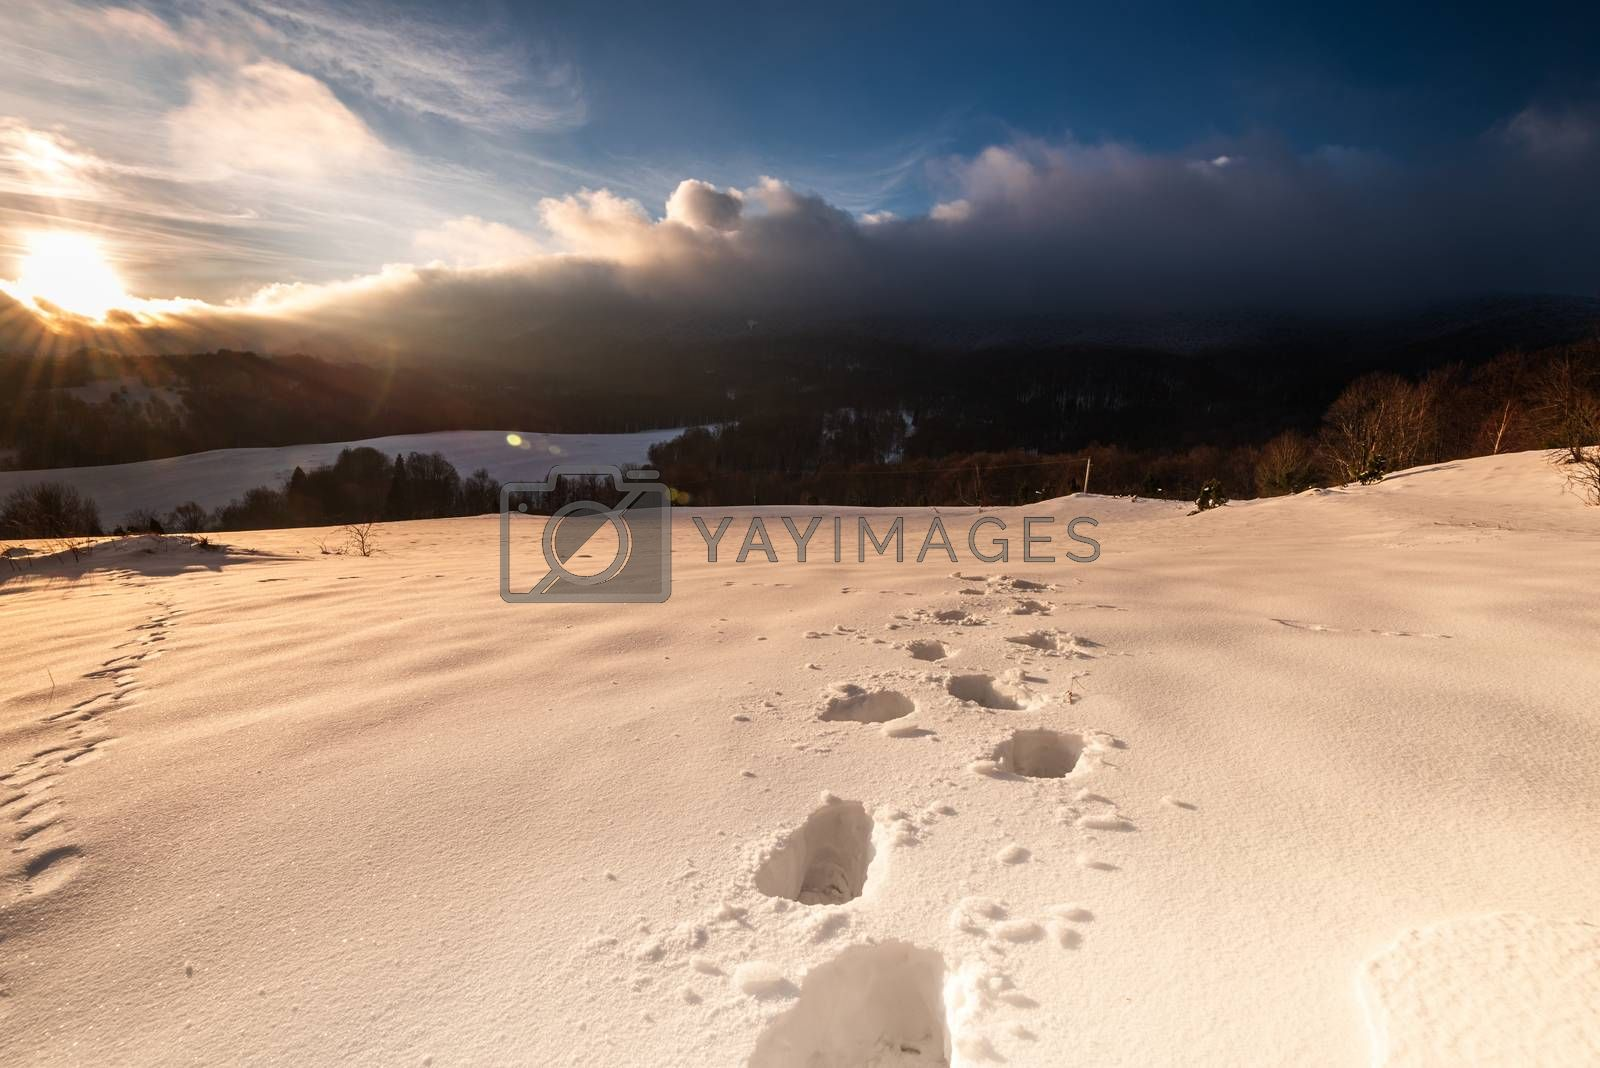 Foot Steps Trial in Deep Snow in Bieszczady Mountains at Winter. by merc67